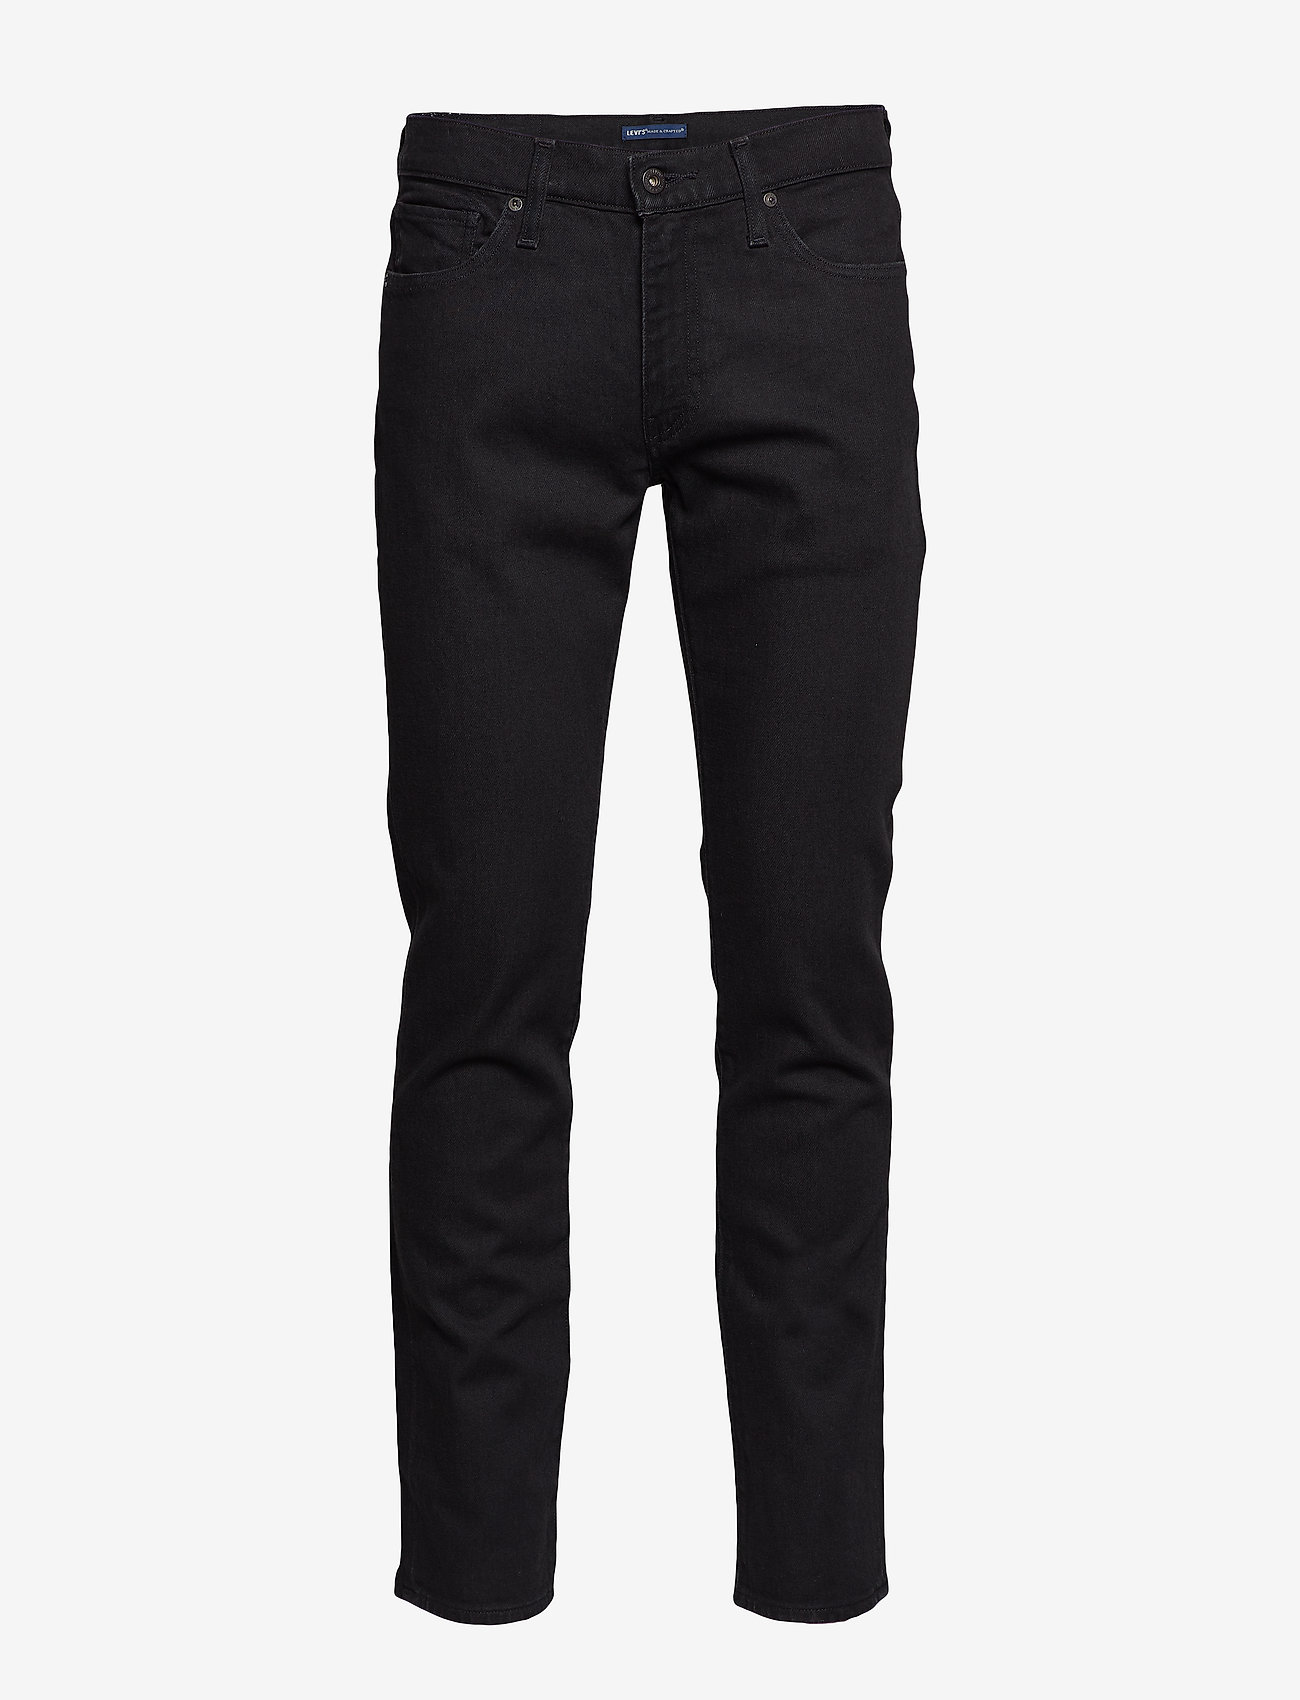 Levi's Made & Crafted - LMC 511 LMC BLACK RINSE 1 - slim jeans - blacks - 0